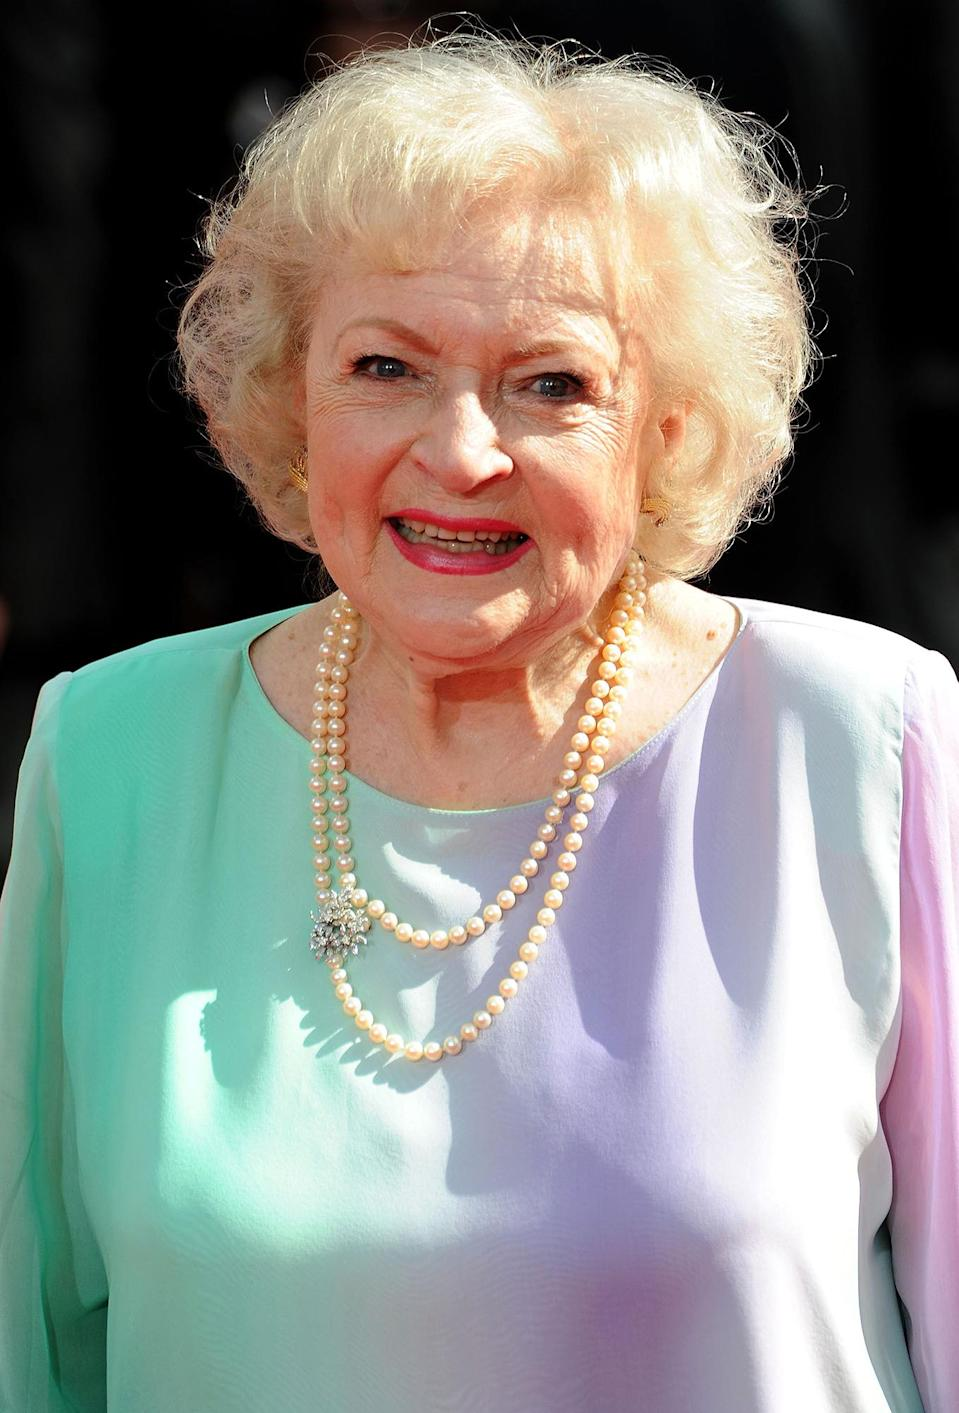 "<p>Now 99 years old, the actress offered a more serious look back on the key to her full and joyful life. ""Don't take yourself too seriously,"" <a href=""https://people.com/tv/betty-white-preps-for-99th-birthday-and-says-a-sense-of-humor-keeps-her-forever-young/"" rel=""nofollow noopener"" target=""_blank"" data-ylk=""slk:she told PEOPLE"" class=""link rapid-noclick-resp"">she told PEOPLE</a>. ""You can lie to others – not that I would – but you cannot lie to yourself.""</p> <p>She also told PEOPLE that she is choosing to focus on the good saying, ""I don't like the other side. The positive side is a lot more fun."" </p>"